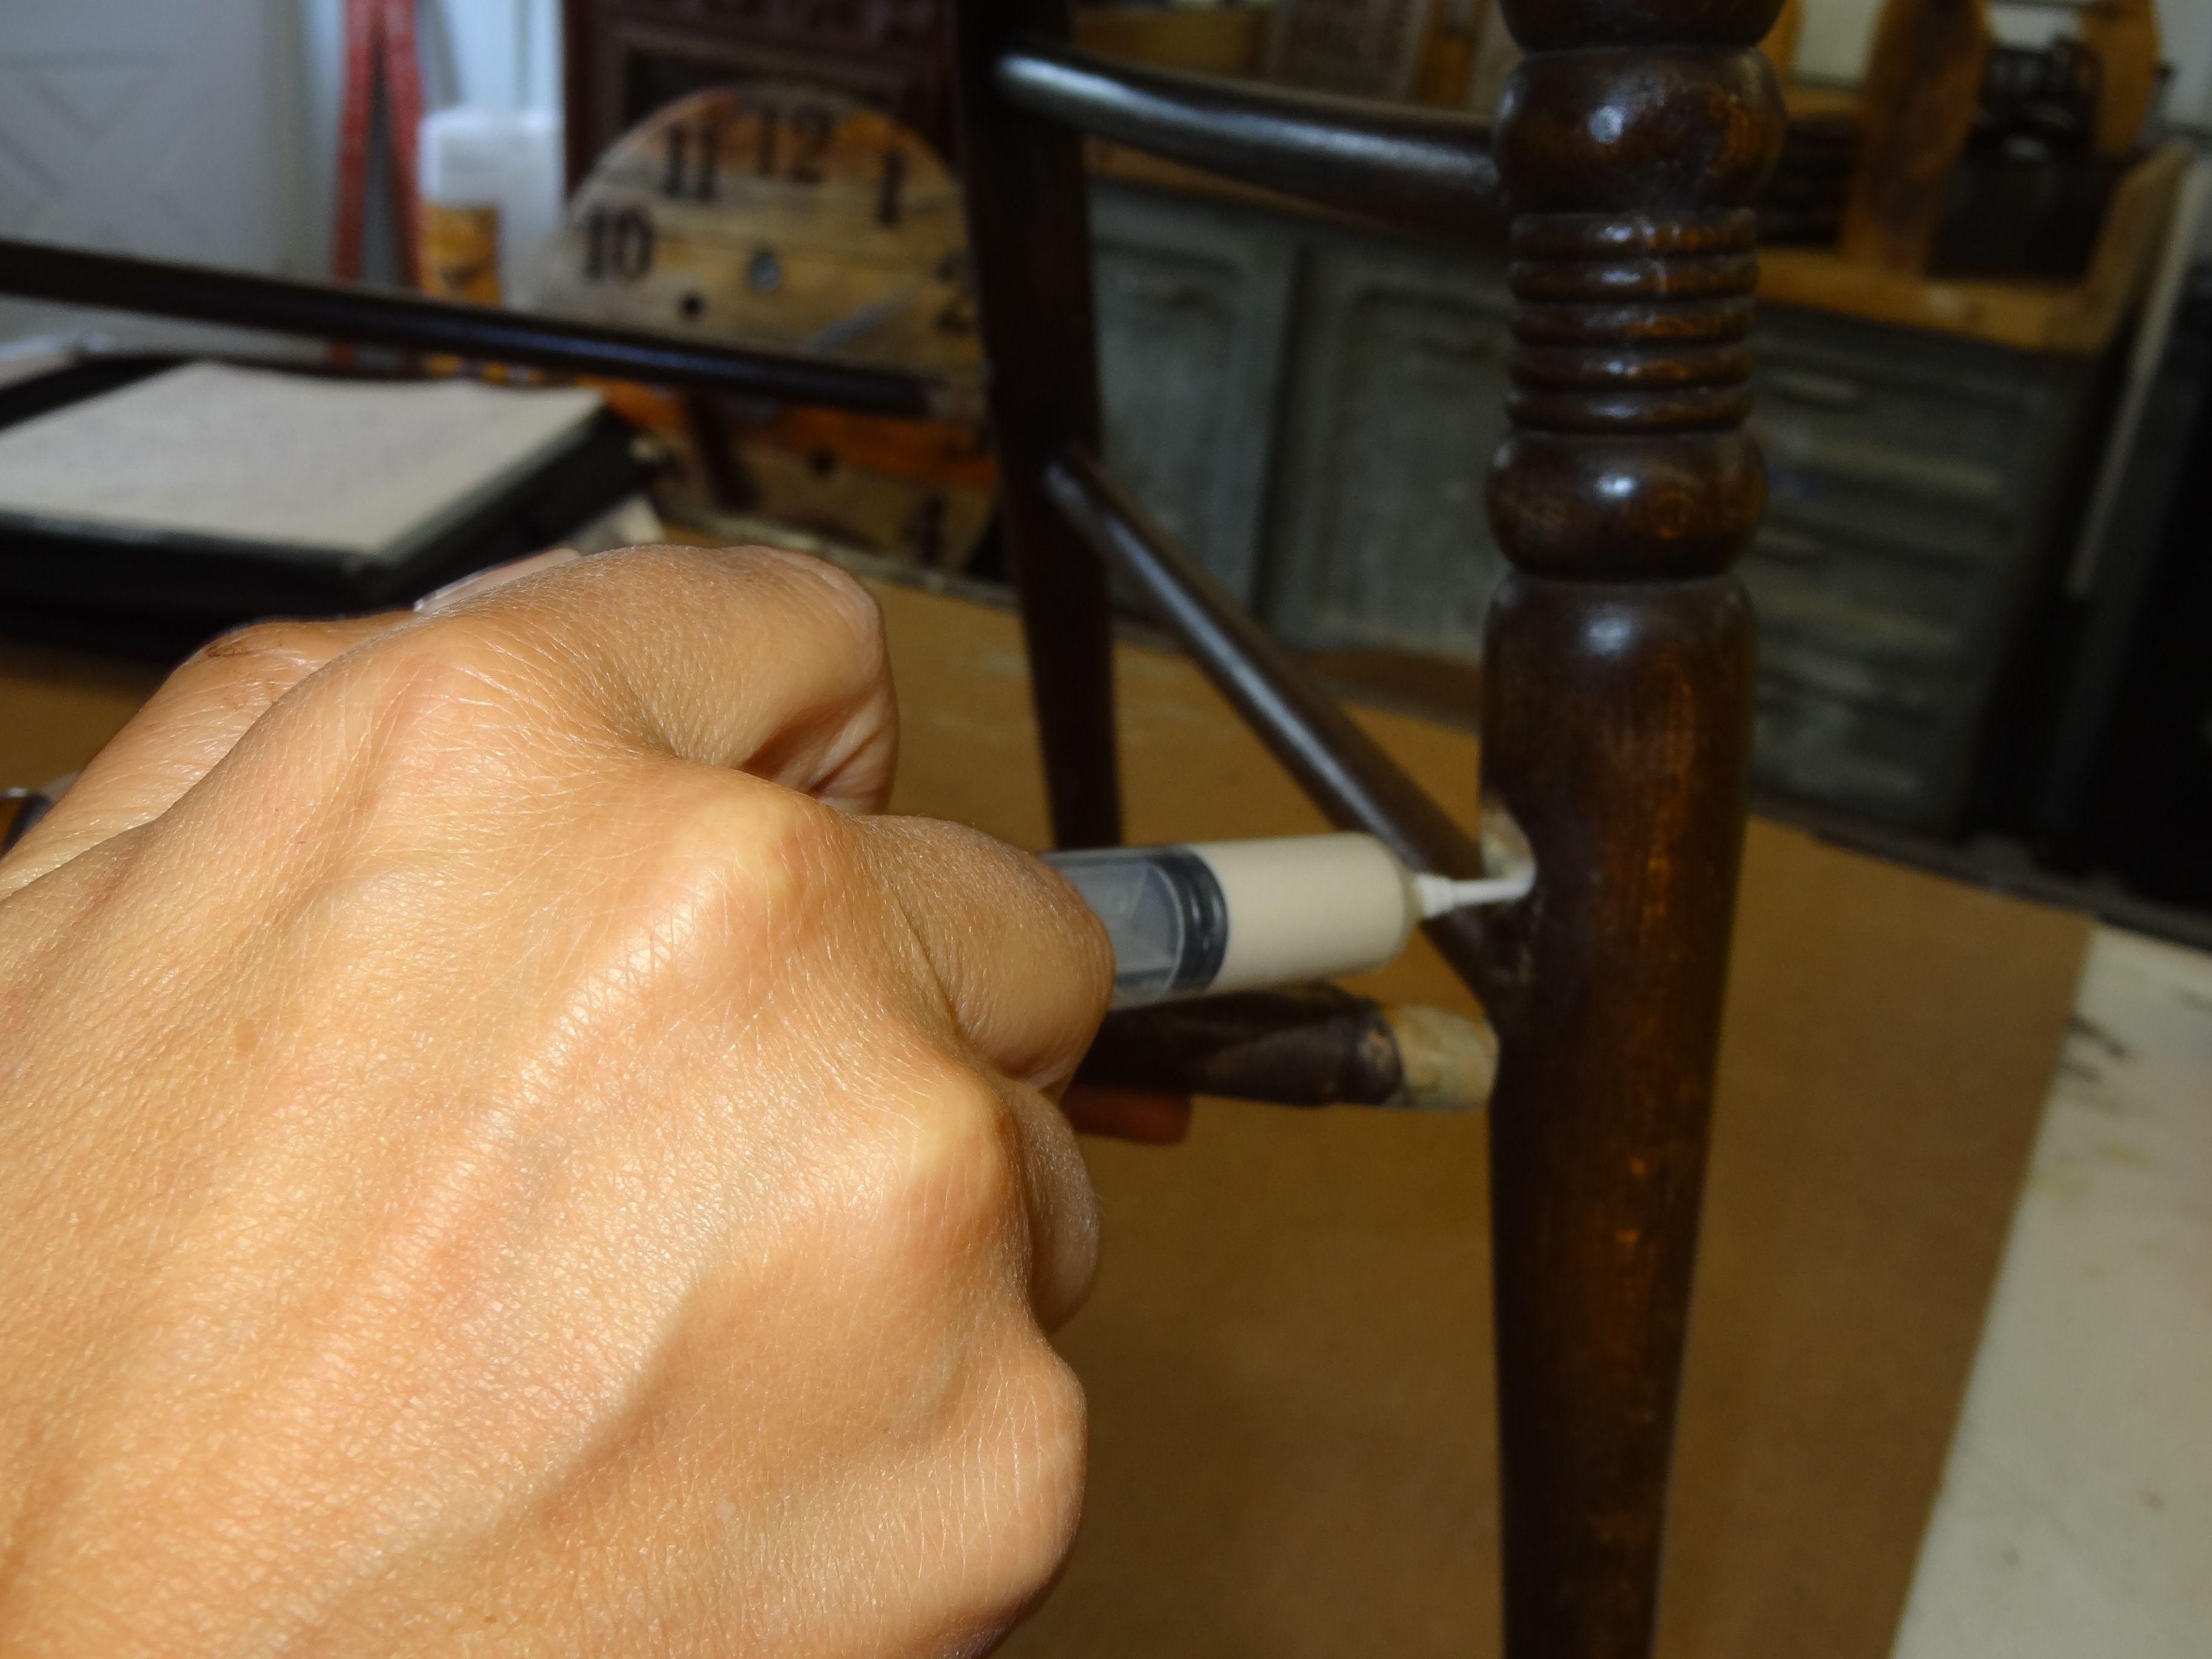 fixing wooden chairs how to install chair rail 10 furniture problems you can fix yourself p after years of being pushed and pulled from the dinner table